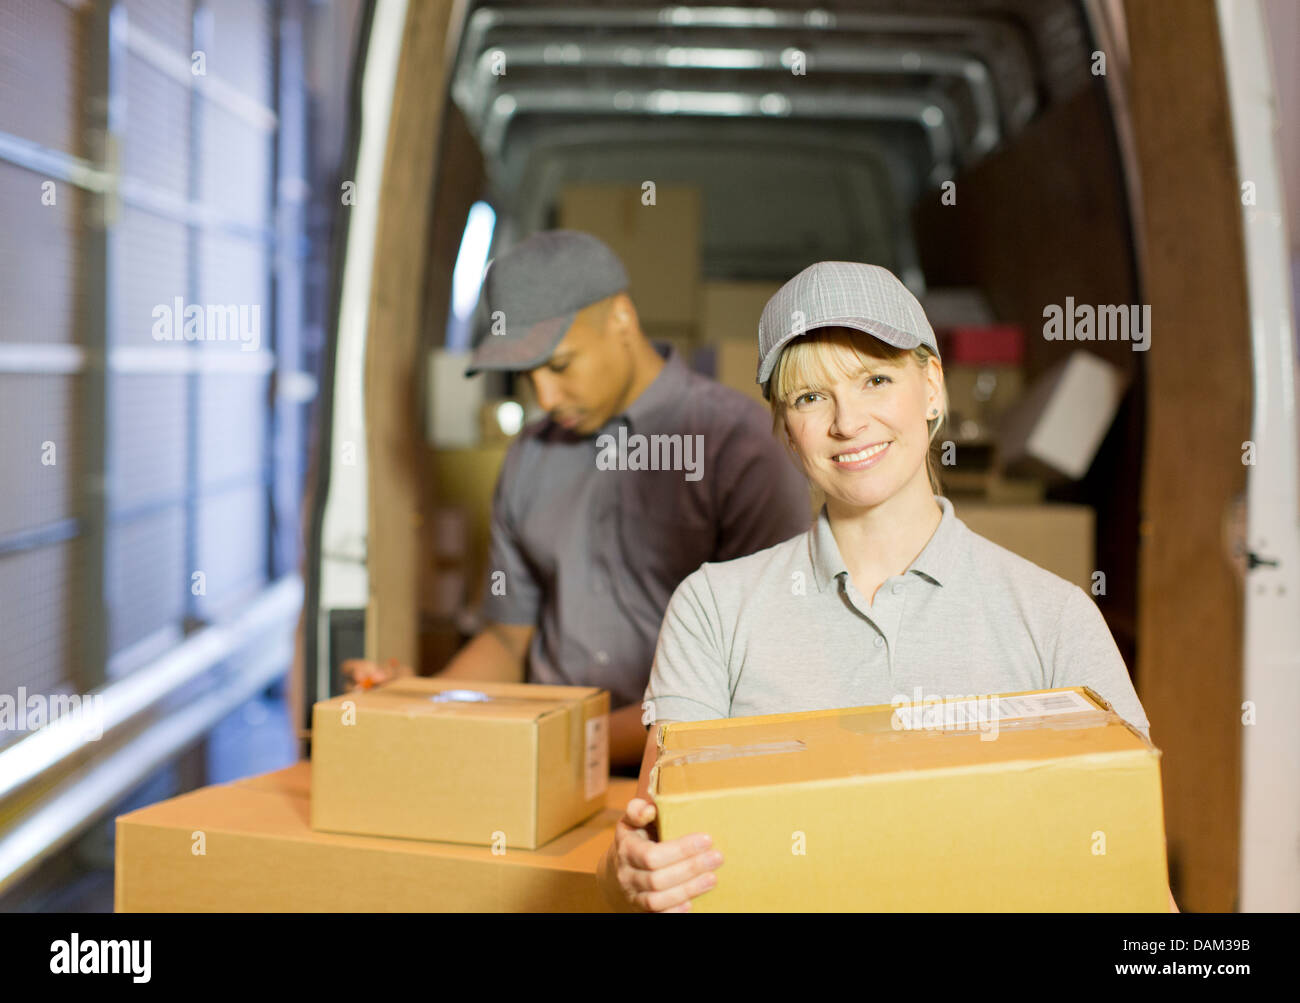 Delivery people loading boxes into van - Stock Image